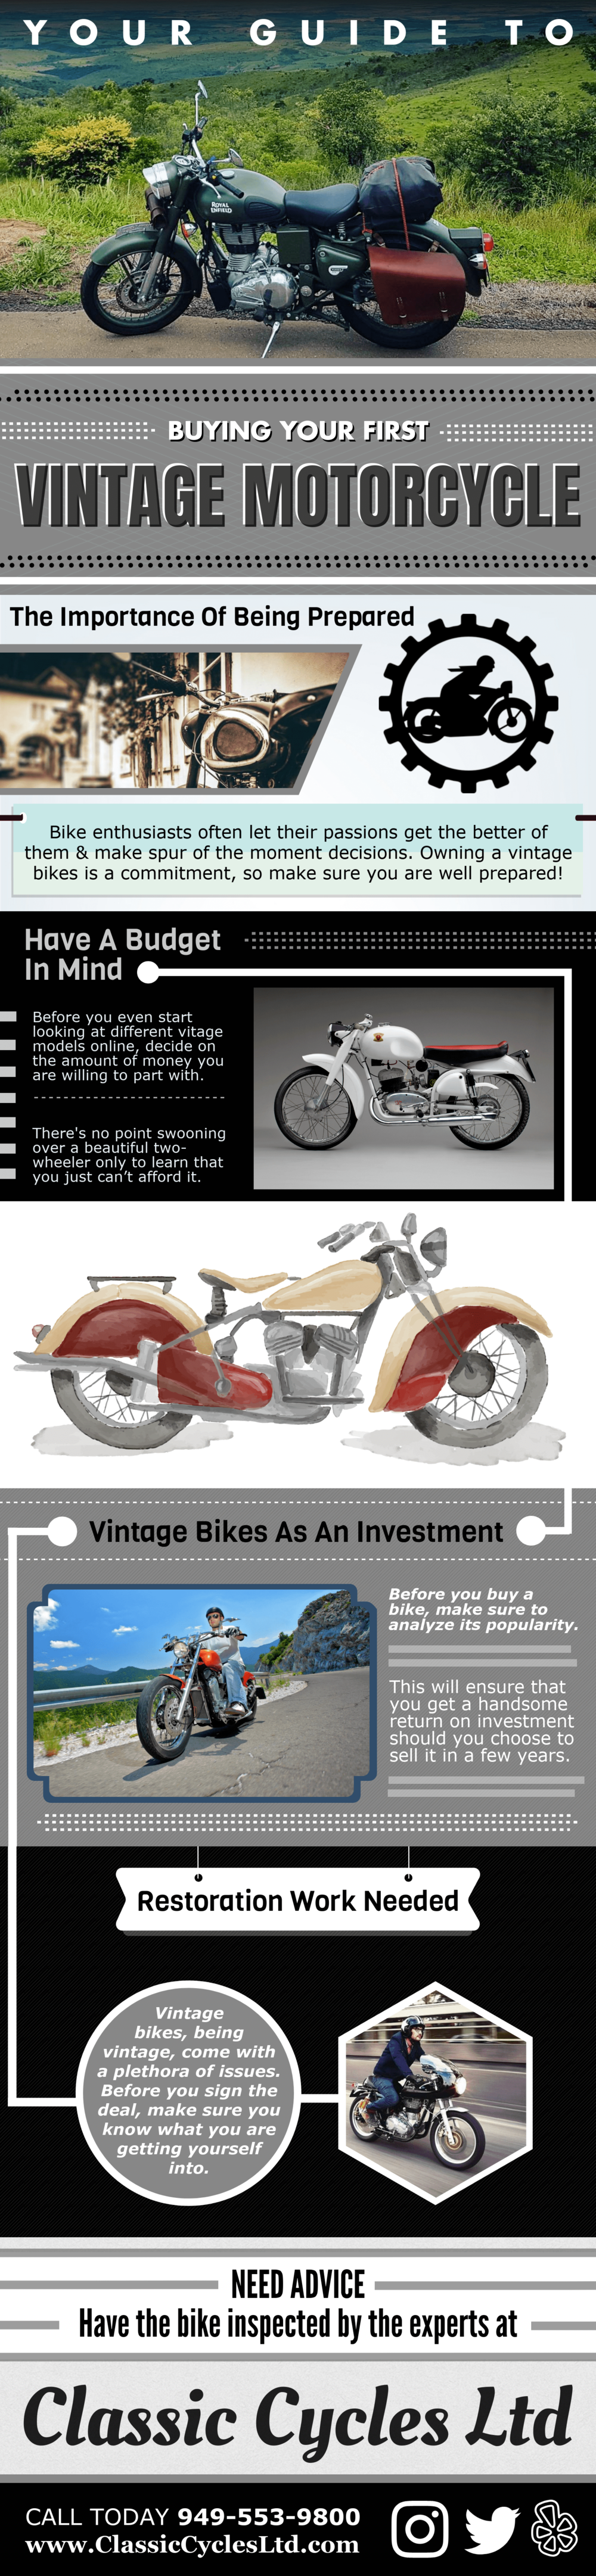 Your Guide To Buying Your First Vintage Motorcycle.png